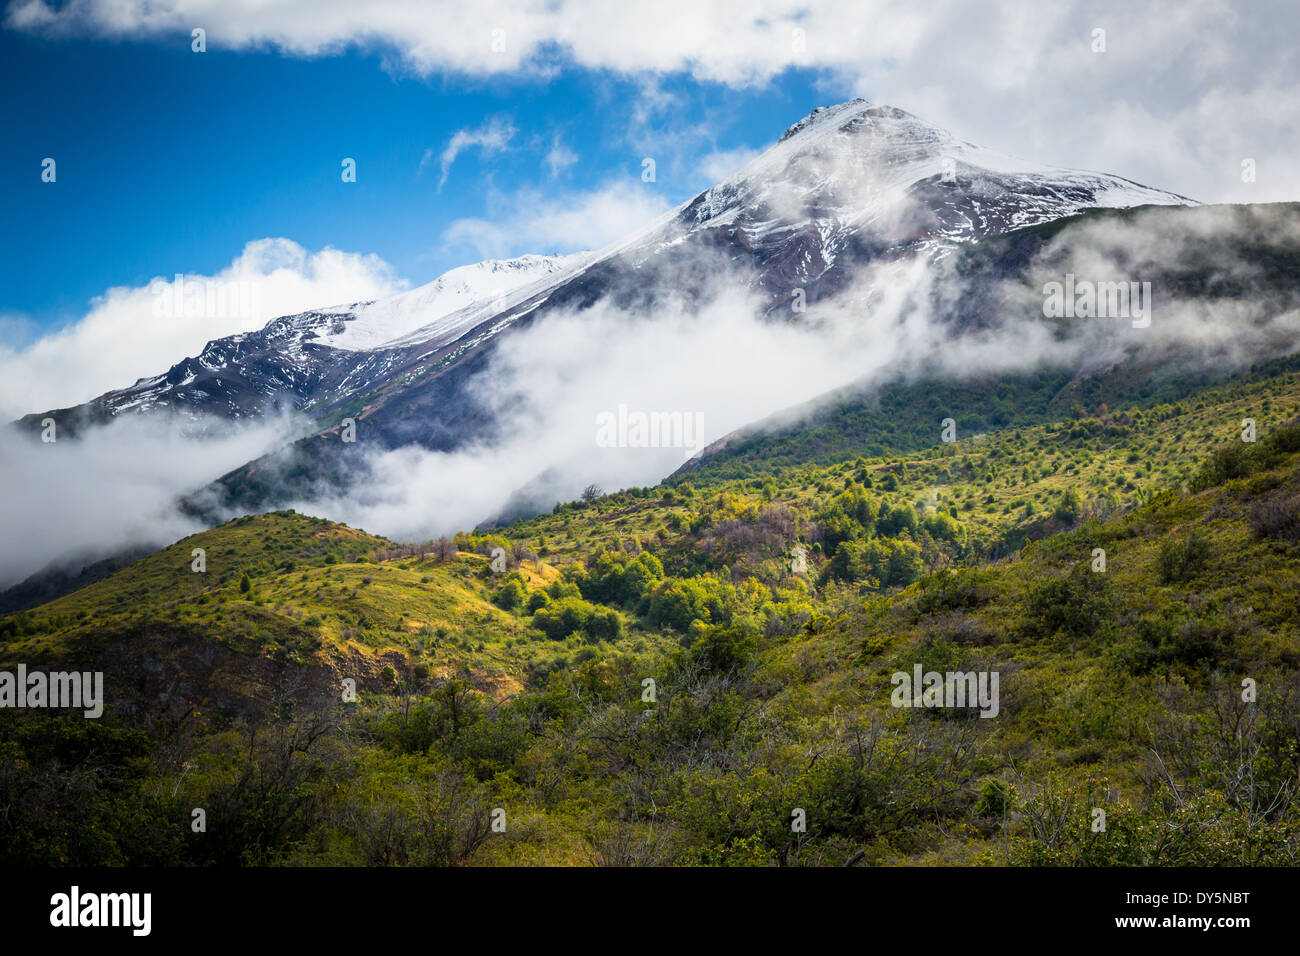 Mountain peak near the Los Glaciares National Park in Patagonia, Argentina - Stock Image